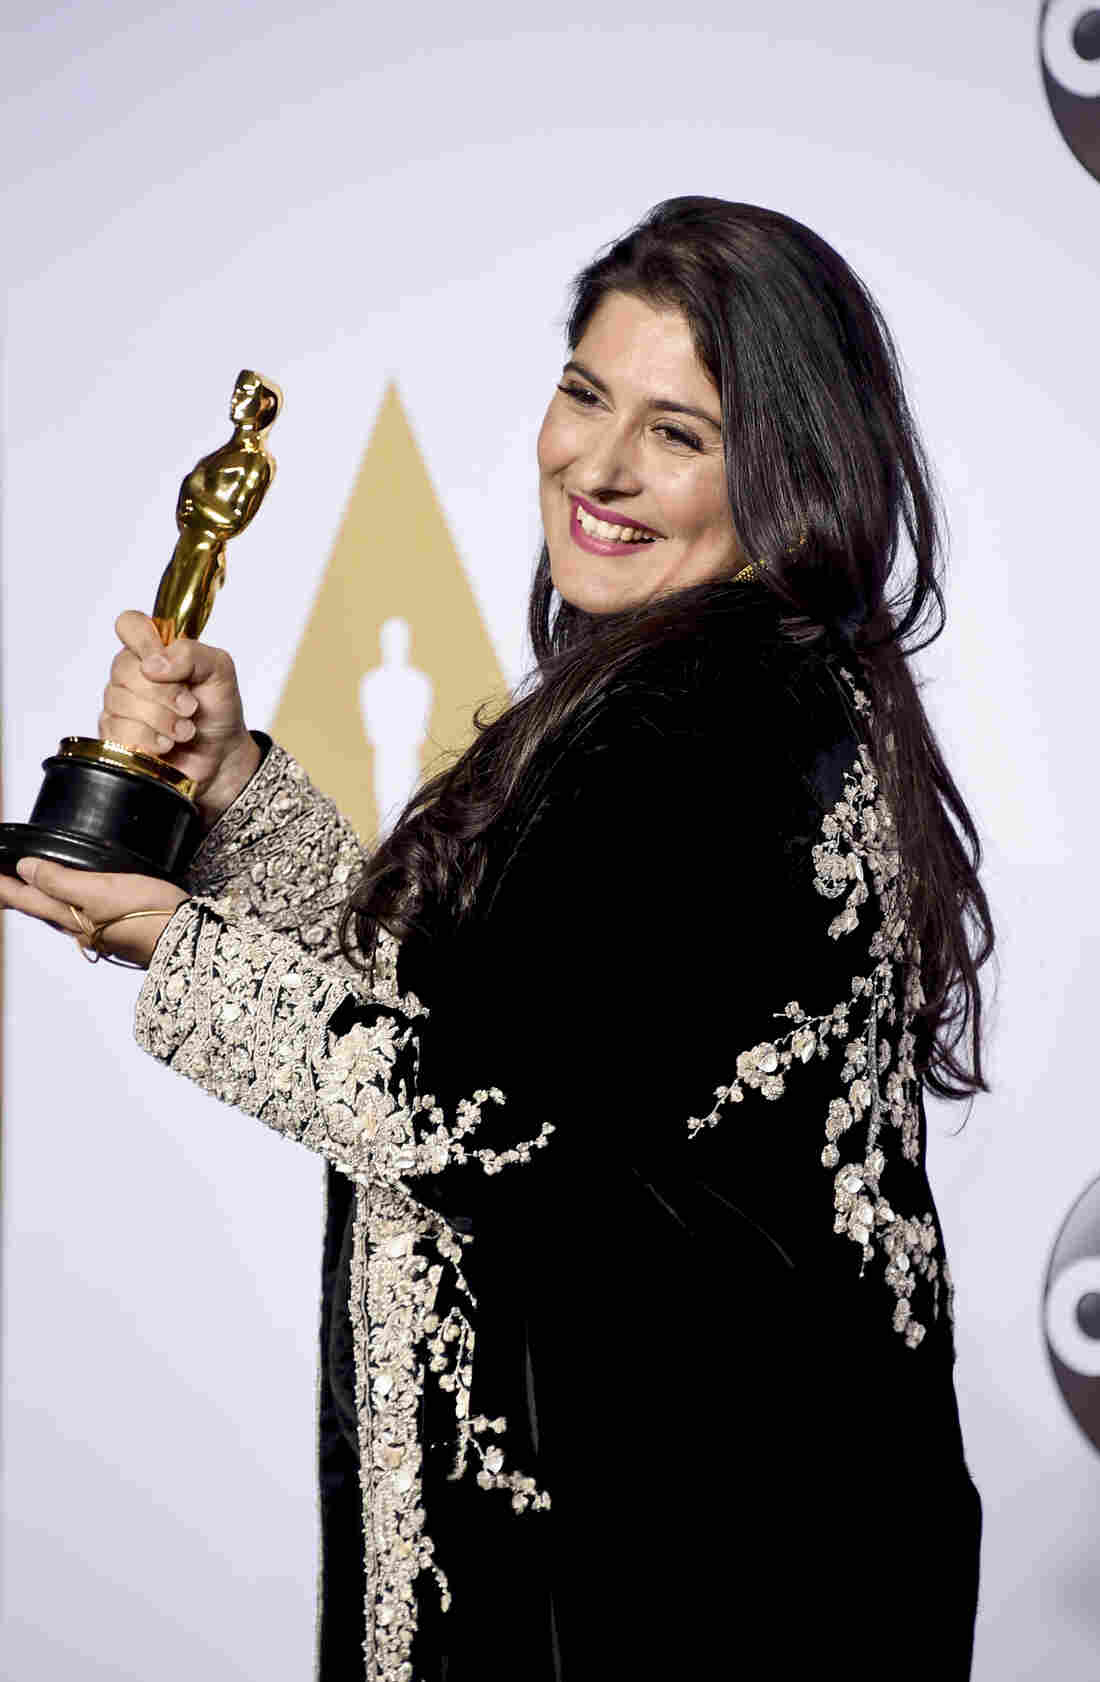 Sharmeen Obaid-Chinoy won the Oscar for best documentary short subject for A Girl in the River: The Price of Forgiveness.